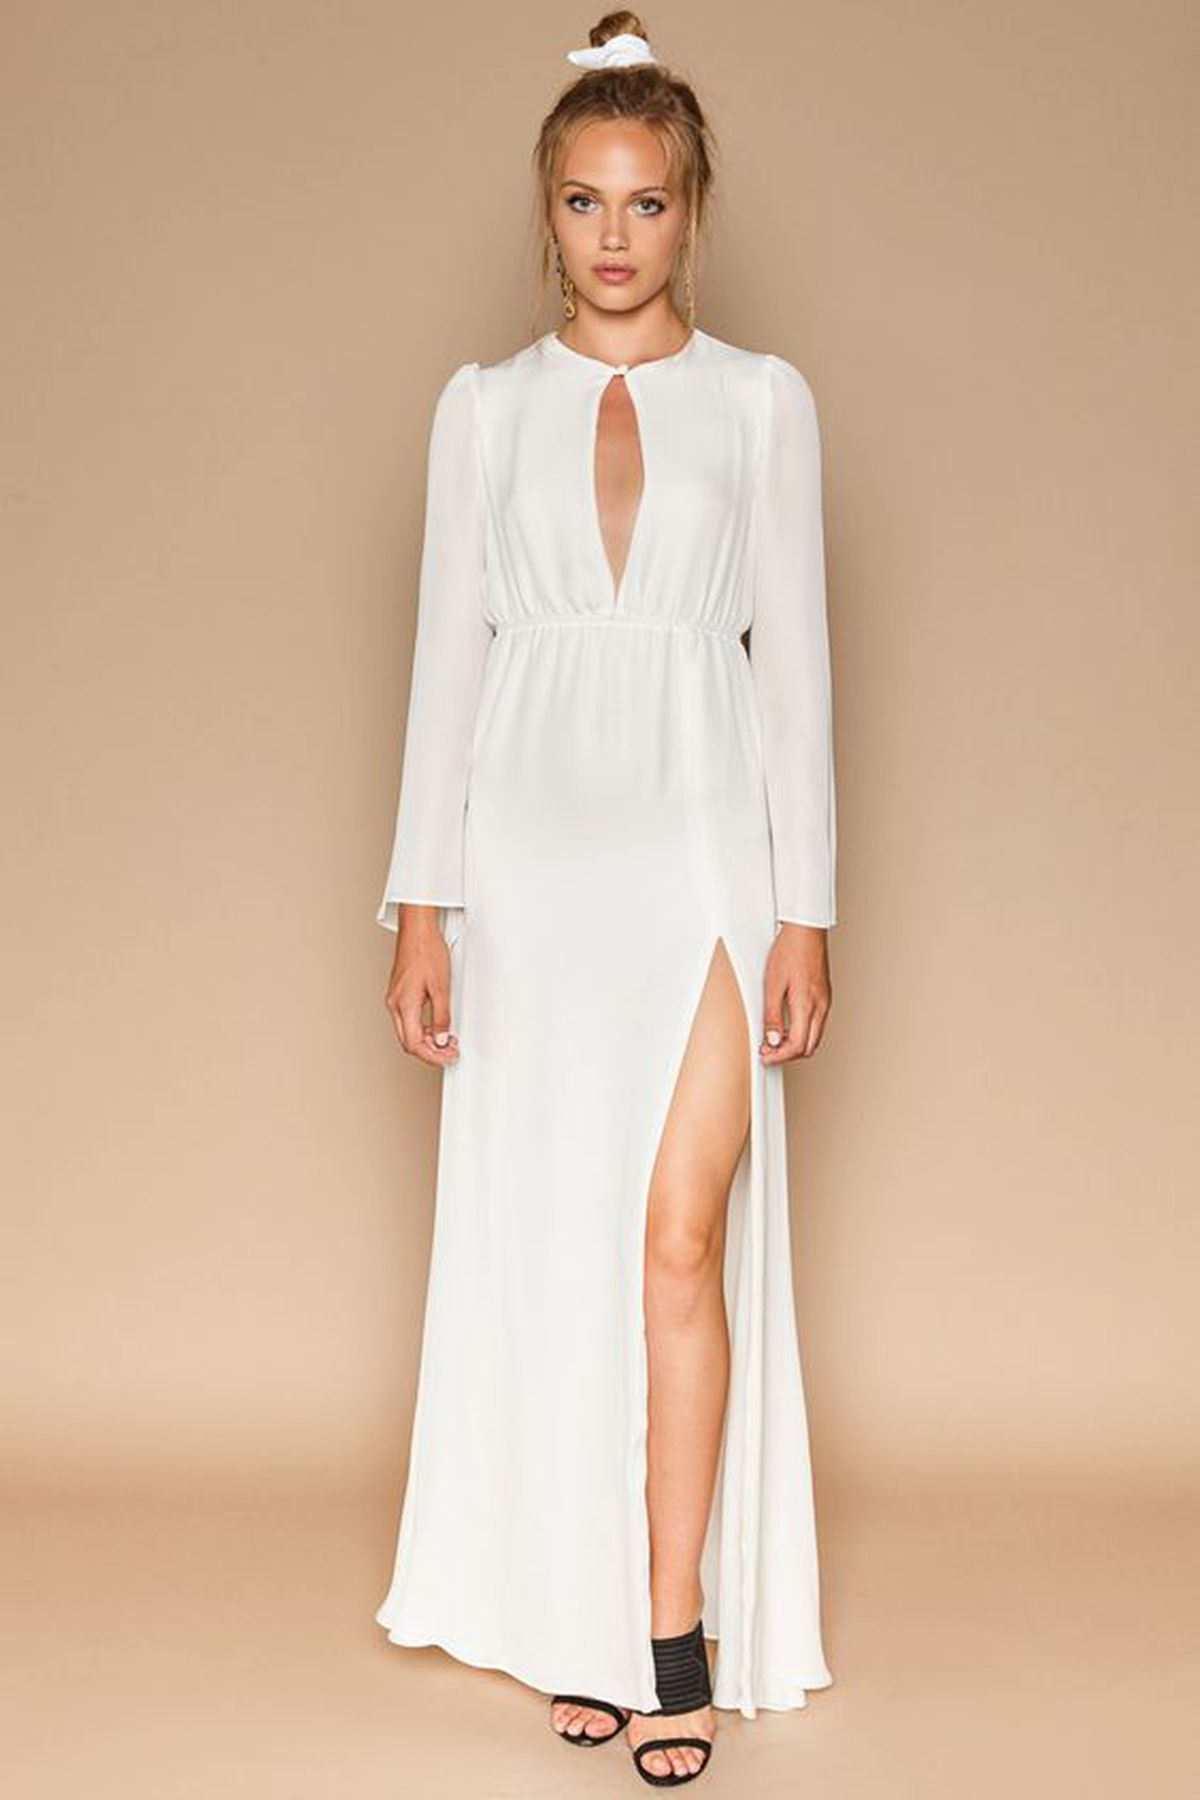 Where to Buy Affordable Wedding Dresses - Racked